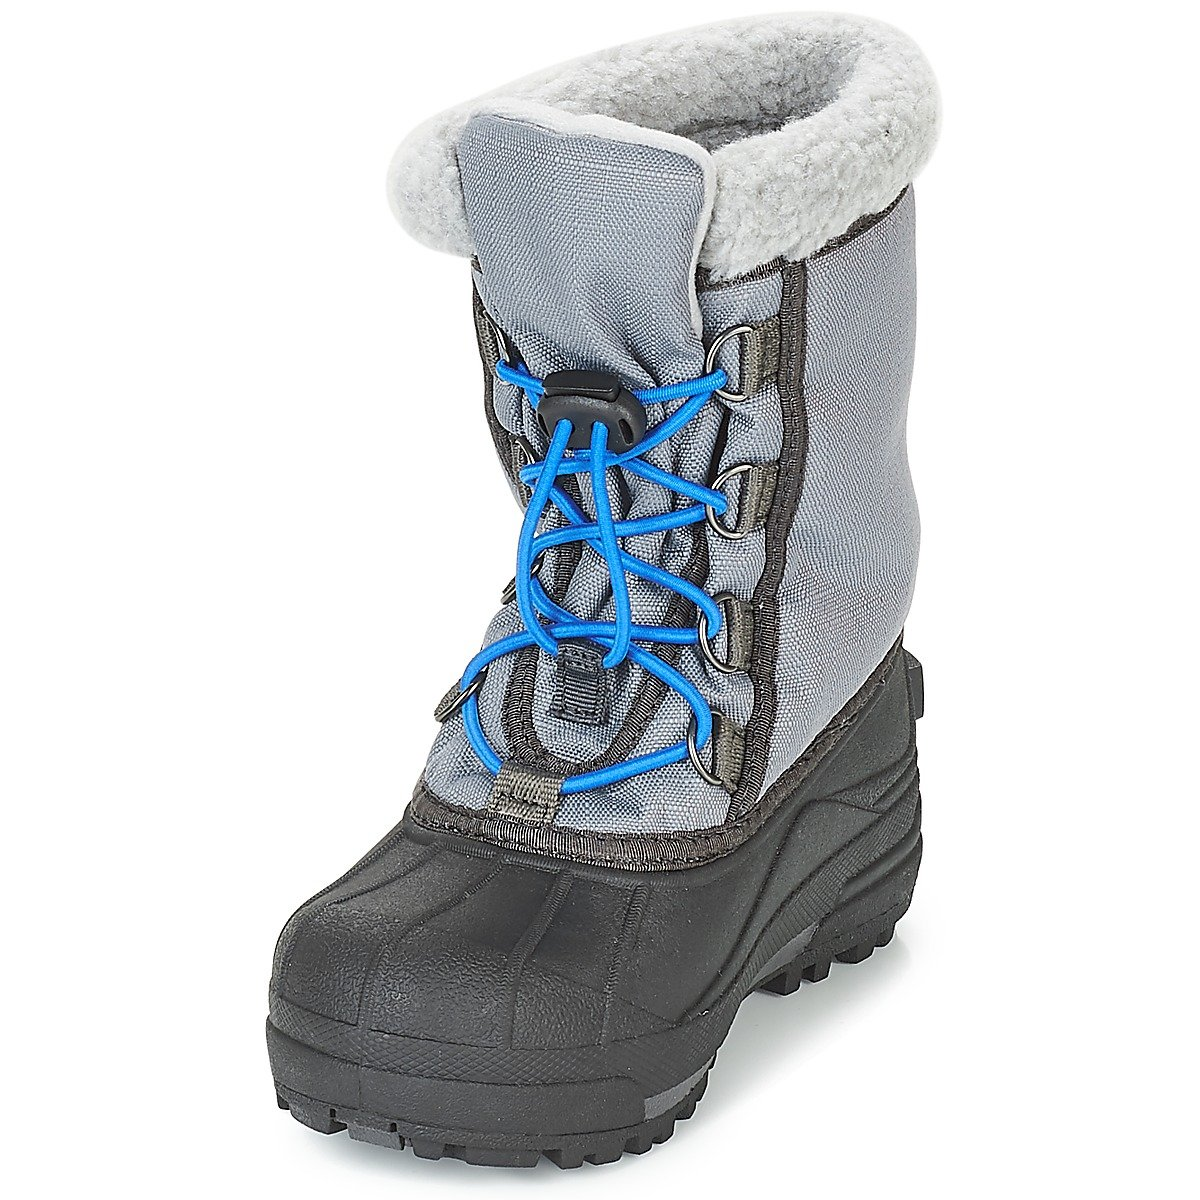 c3787ad4 Sorel Youth Cumberland Boot 2019 Quarry Shark: Amazon.co.uk: Shoes & Bags